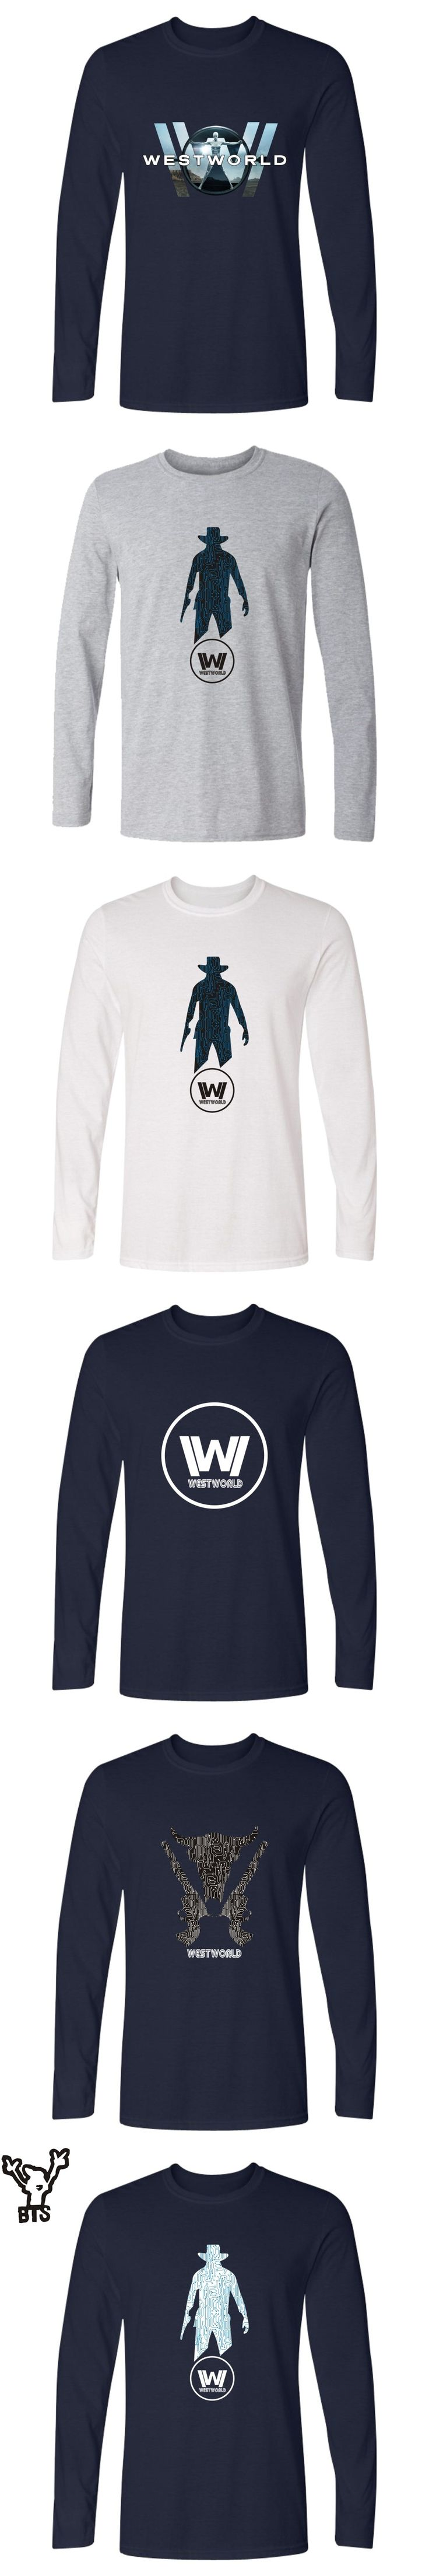 TV Series Westworld Pringting Cotton Long Sleeve T-shirts Men And Plus Size Hot Sale West World Pullover T Shirt Men Clothes